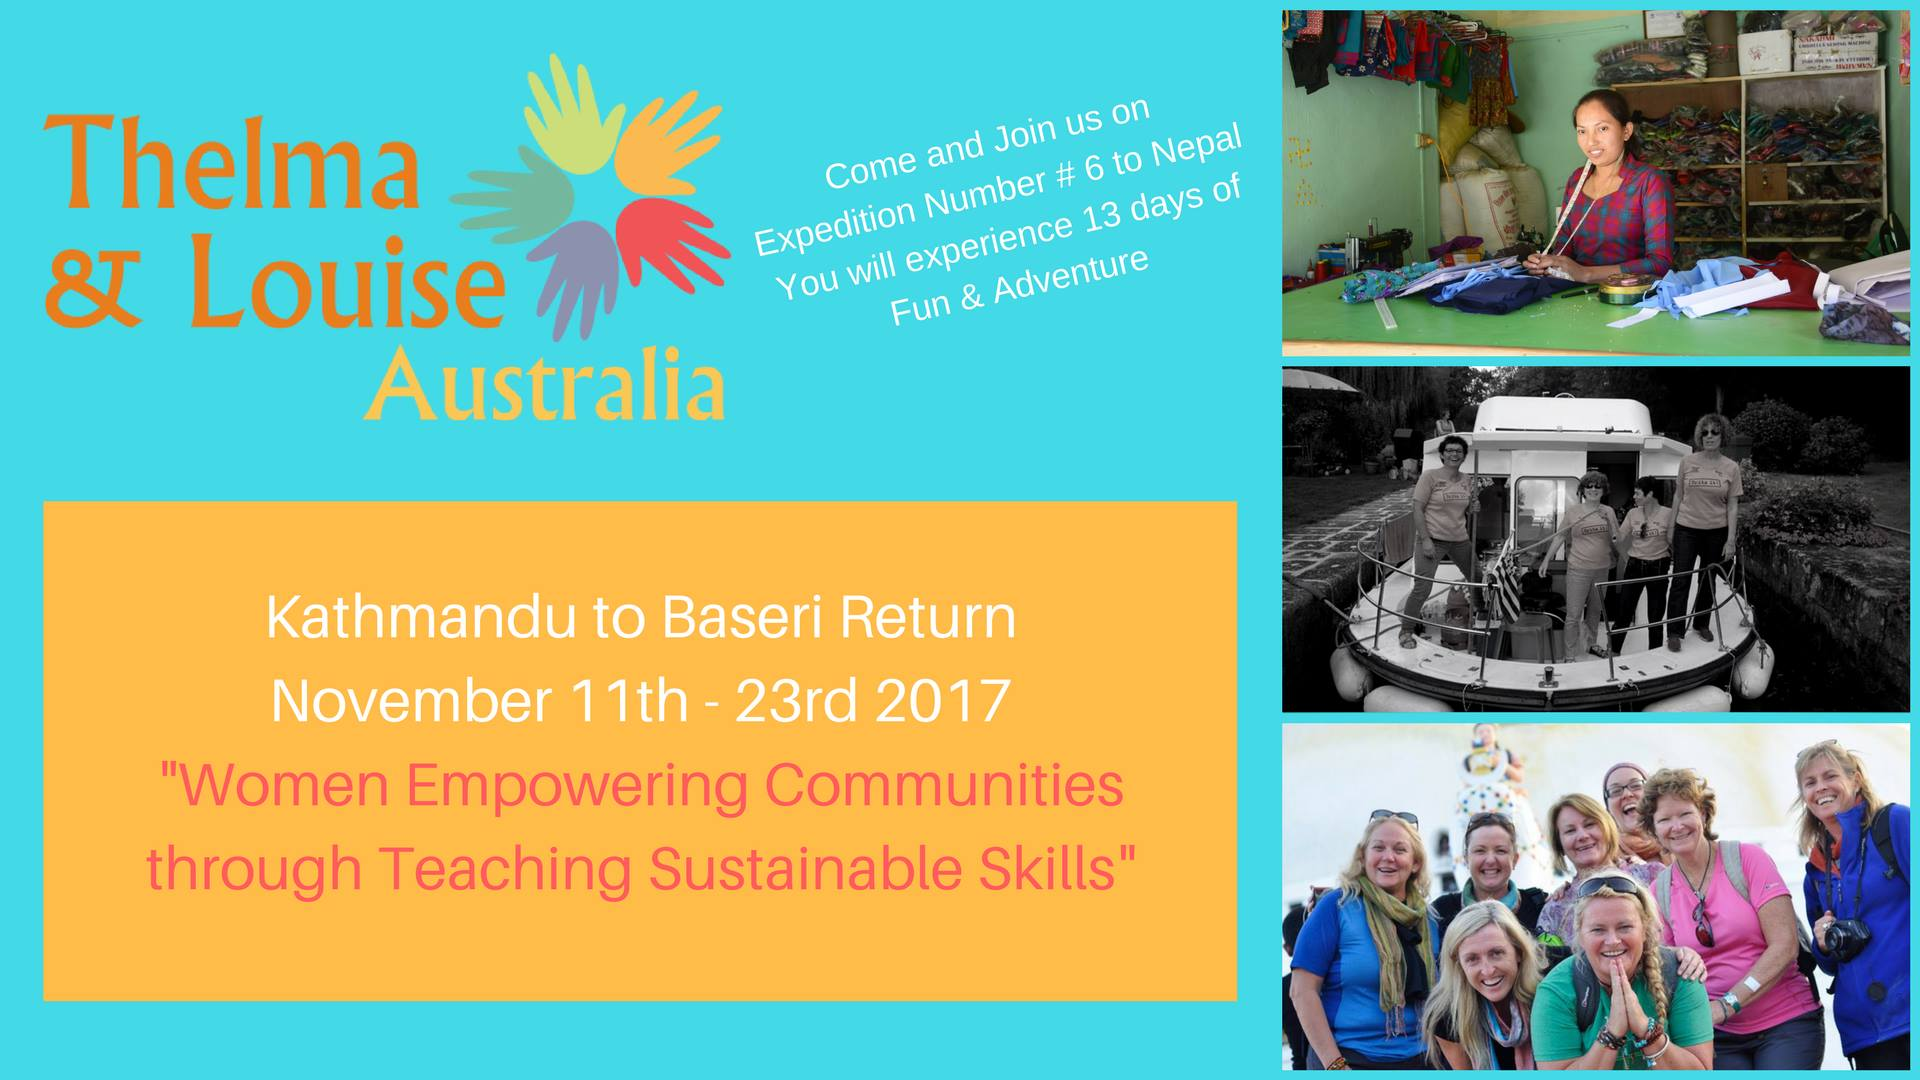 Cairns Events - Event Details - November Expedition to